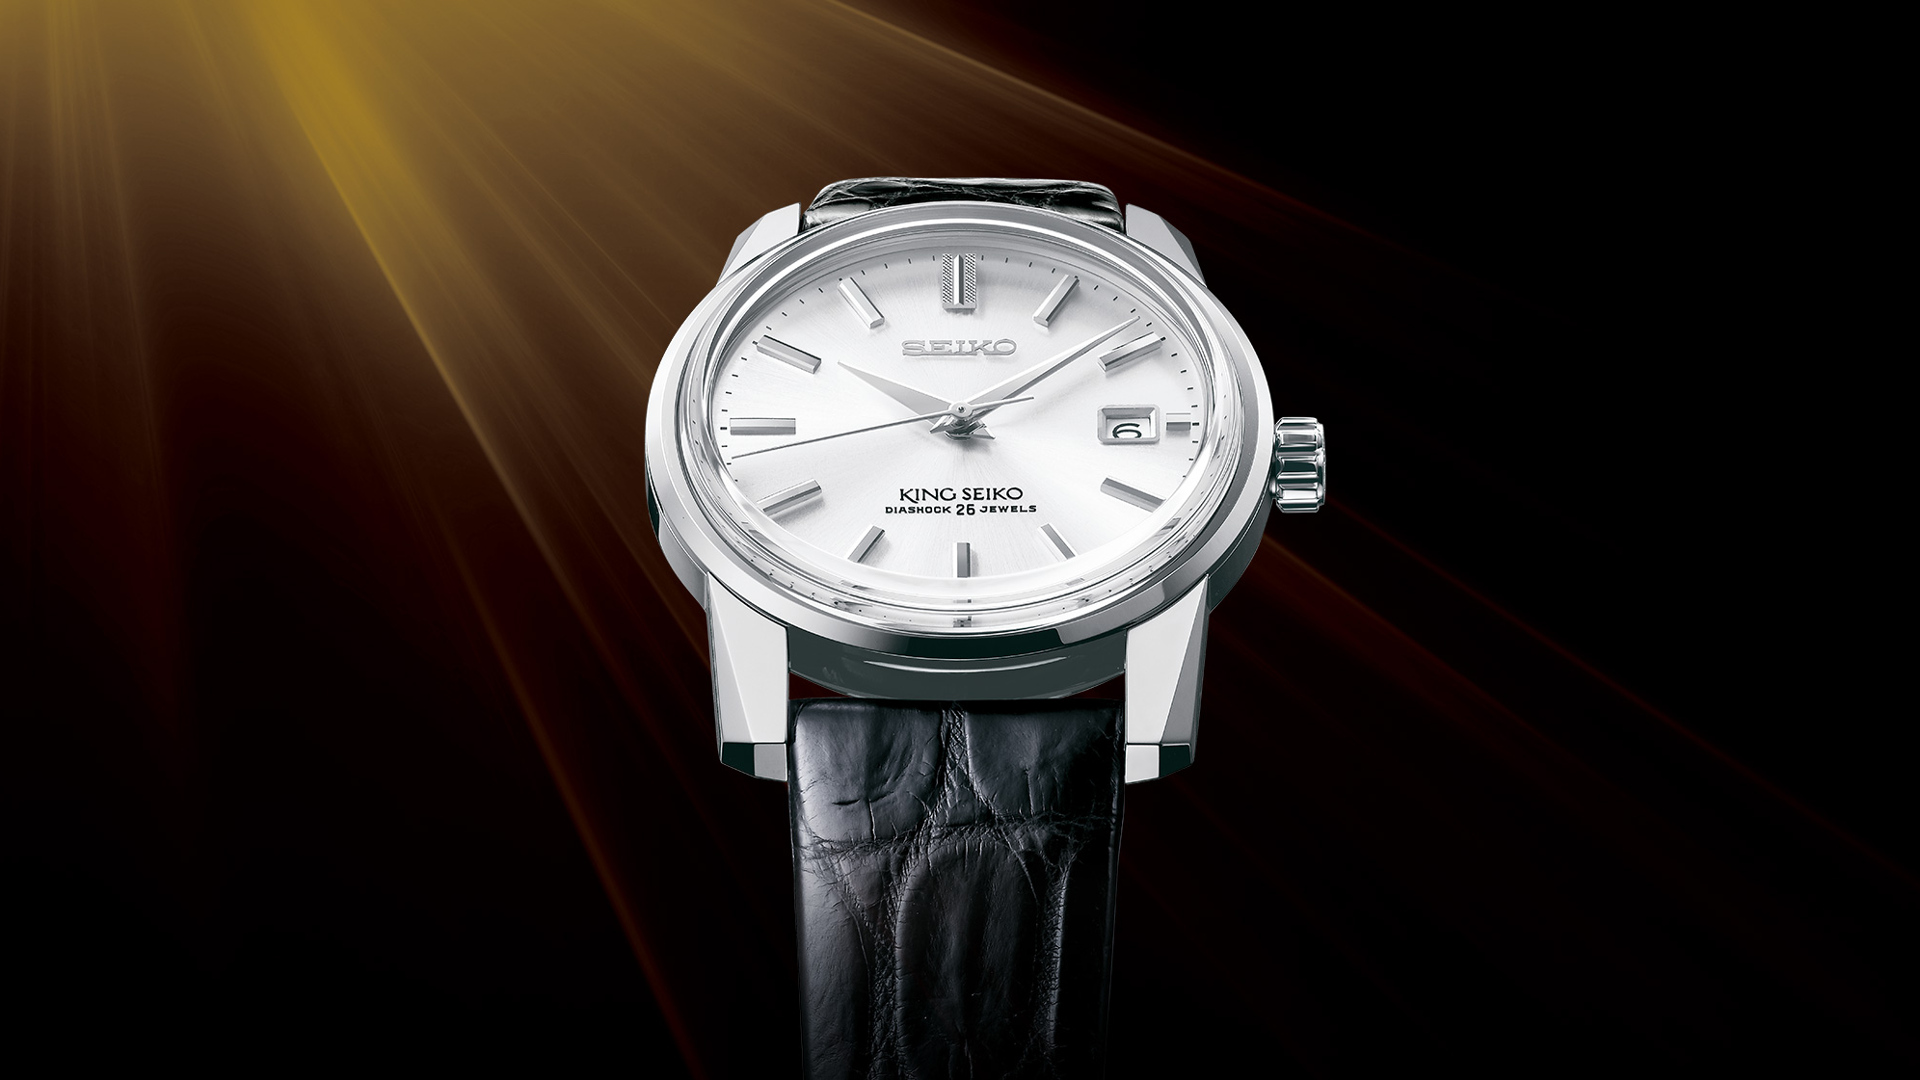 The King Seiko Ksk Will Make Quite a Few Vintage Seiko Lovers Happy